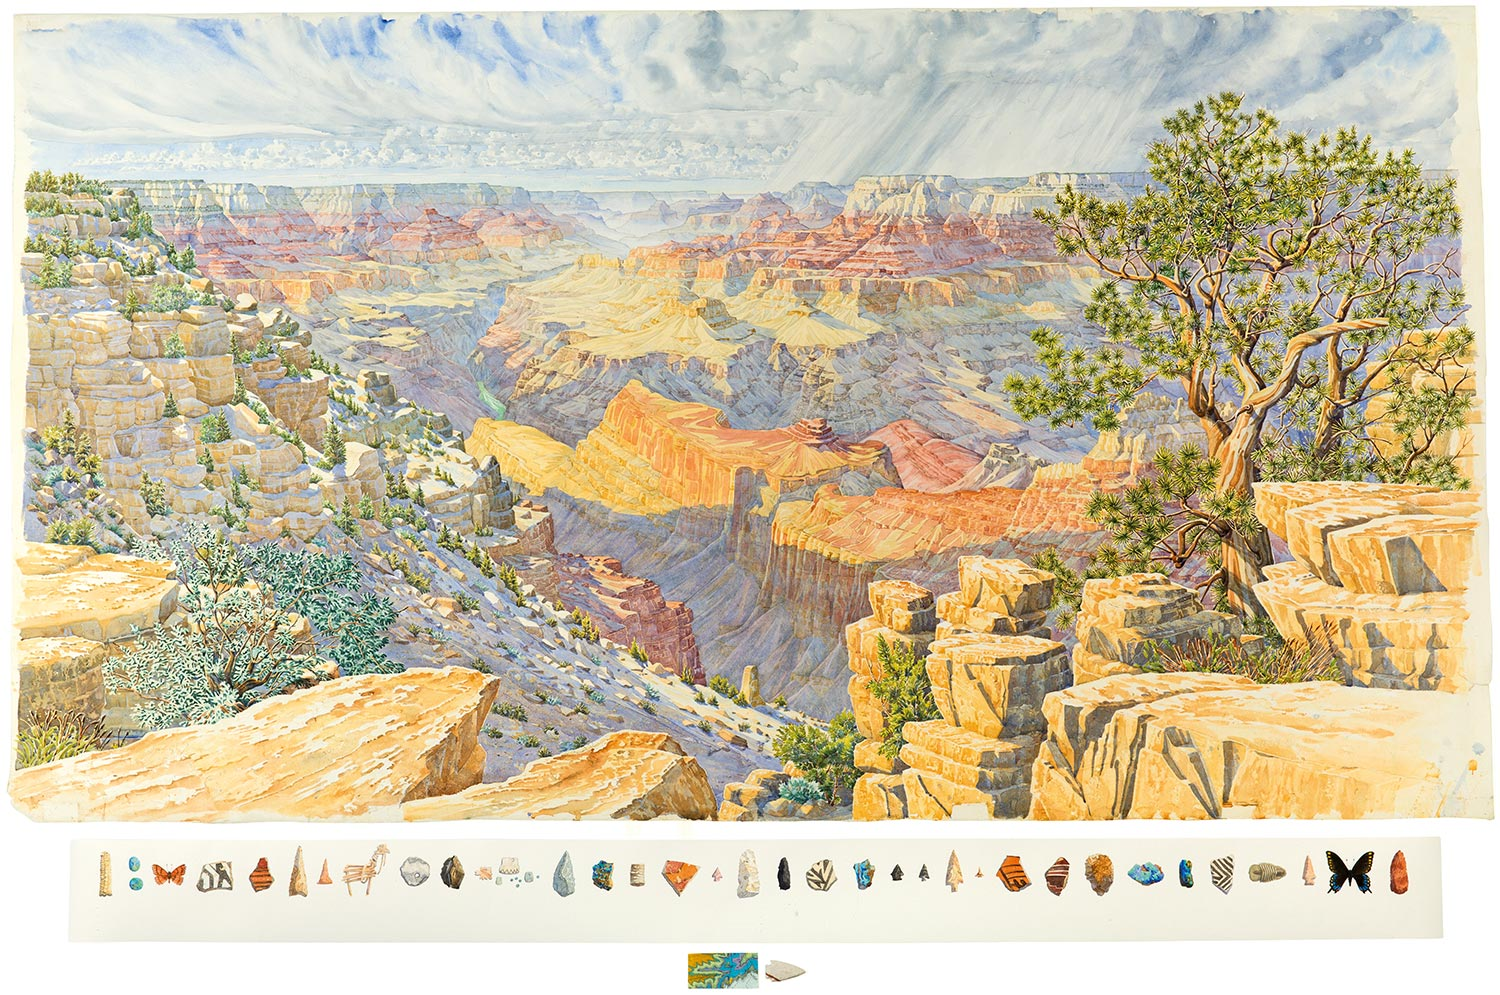 Tony Foster,  Twenty-Three Days Painting the Canyon—From West of Navajo Point , 2013. Watercolor and graphite on paper, map, stone arrowhead by Homer Etherton. 46 1/4 x 84 in. | 5 3/4 x 77 1/4 in. | 2 x 6 3/4 in. Photo by Trevor Burrows Photography. Courtesy of Foster Art & Wilderness Foundation.